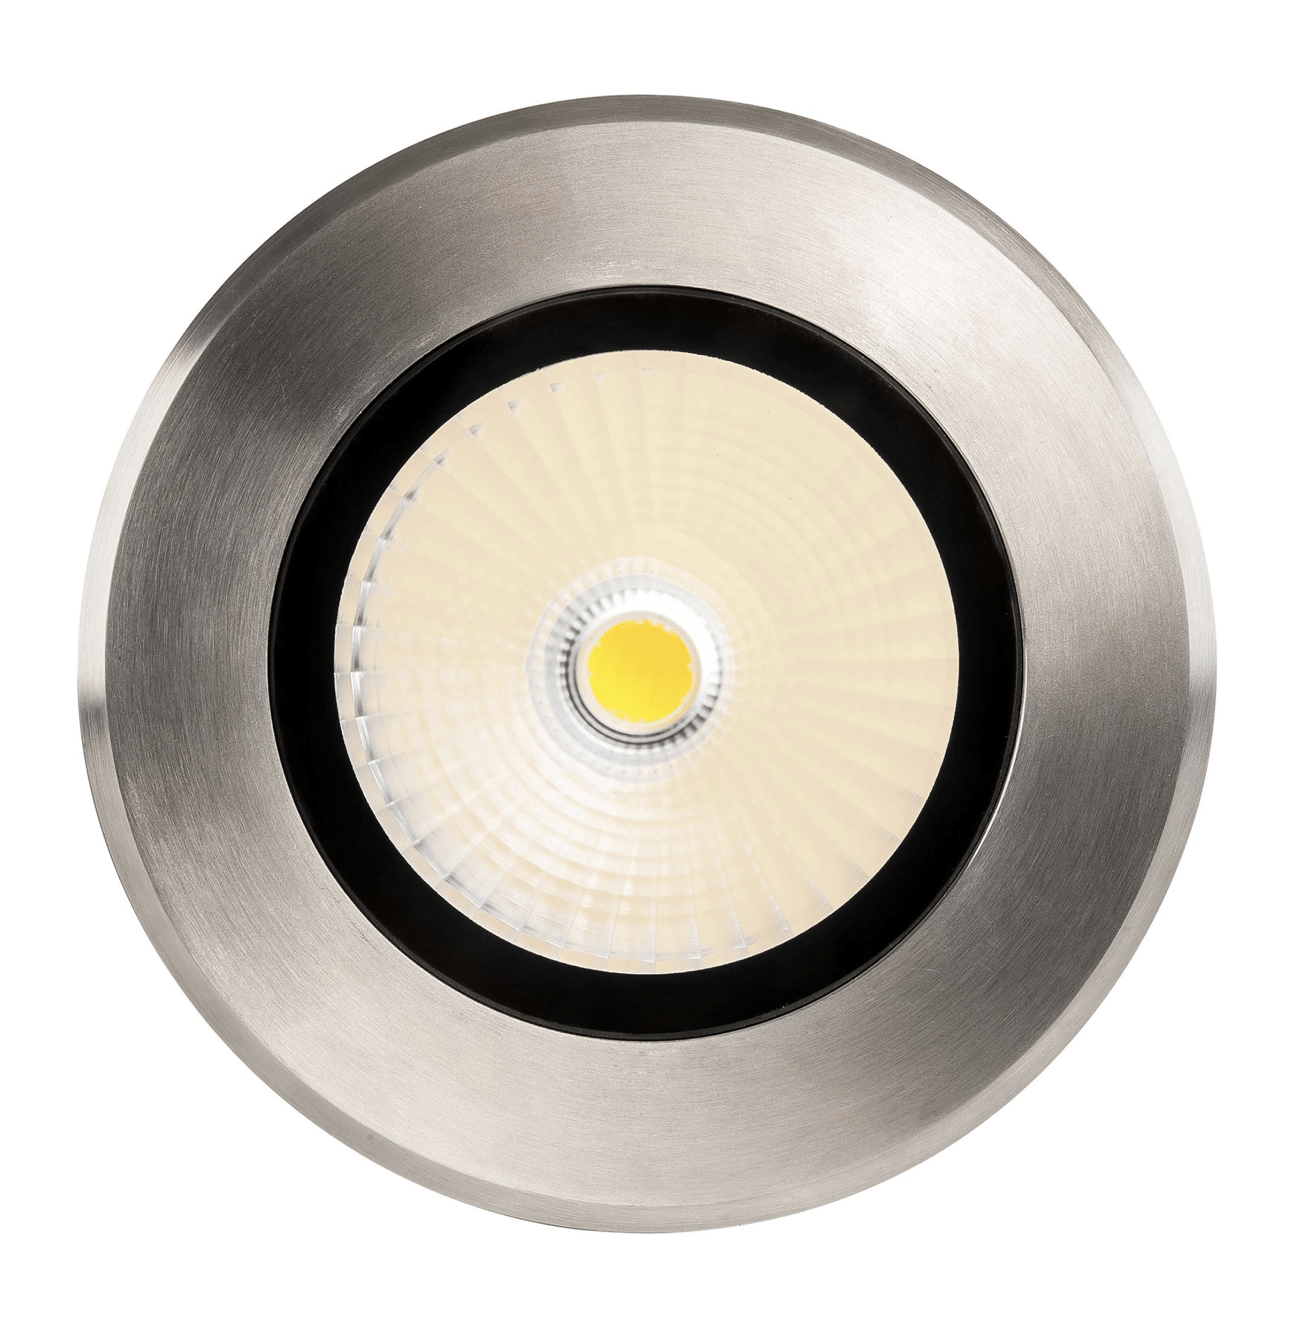 Inground KLIP 30W (narrow beam) Inground Uplighter Lighting Stores